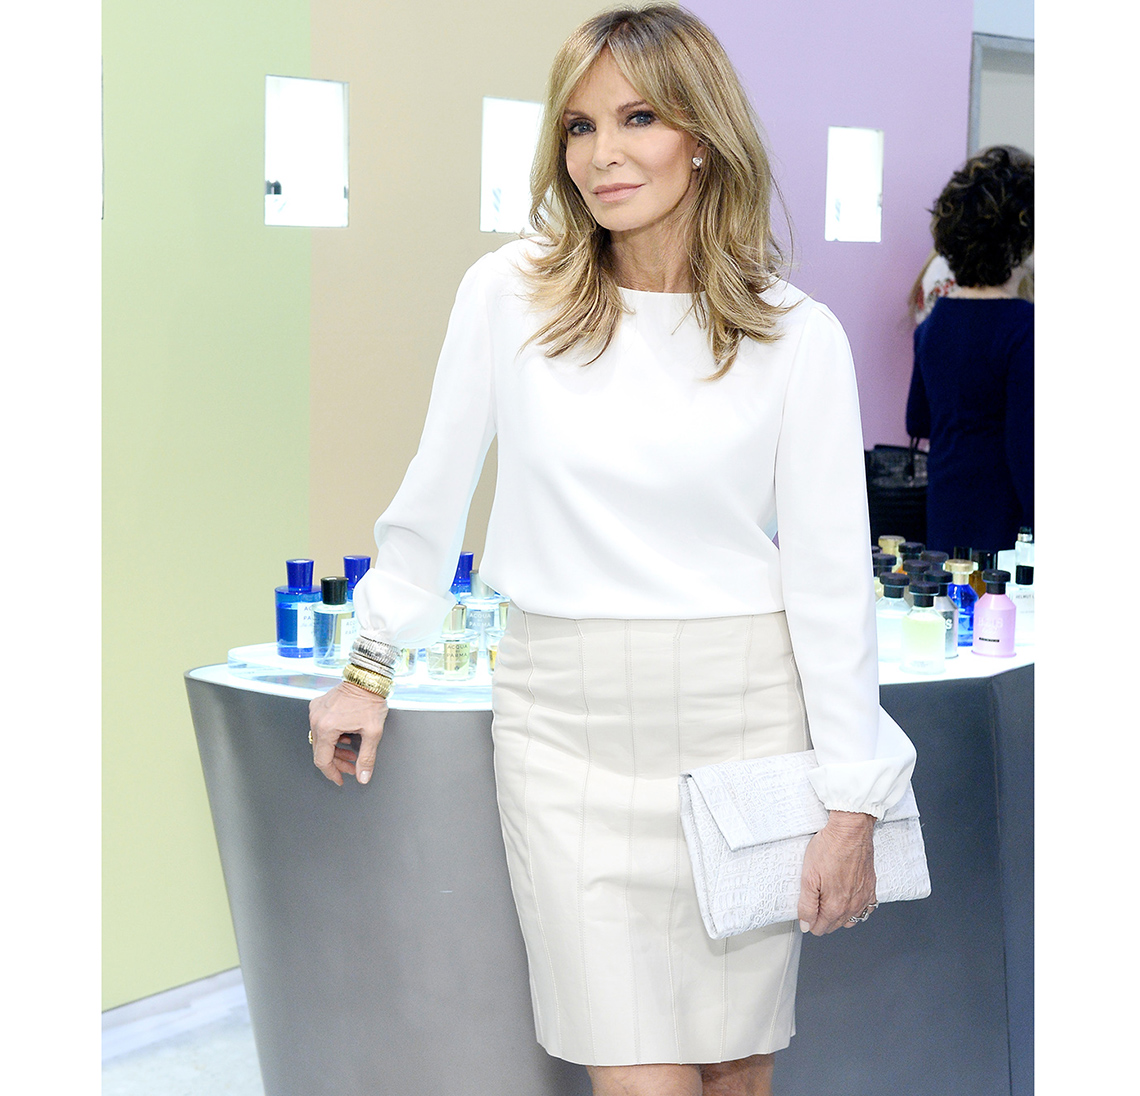 f7959ce6bae Jaclyn Smith wearing a white blouse.